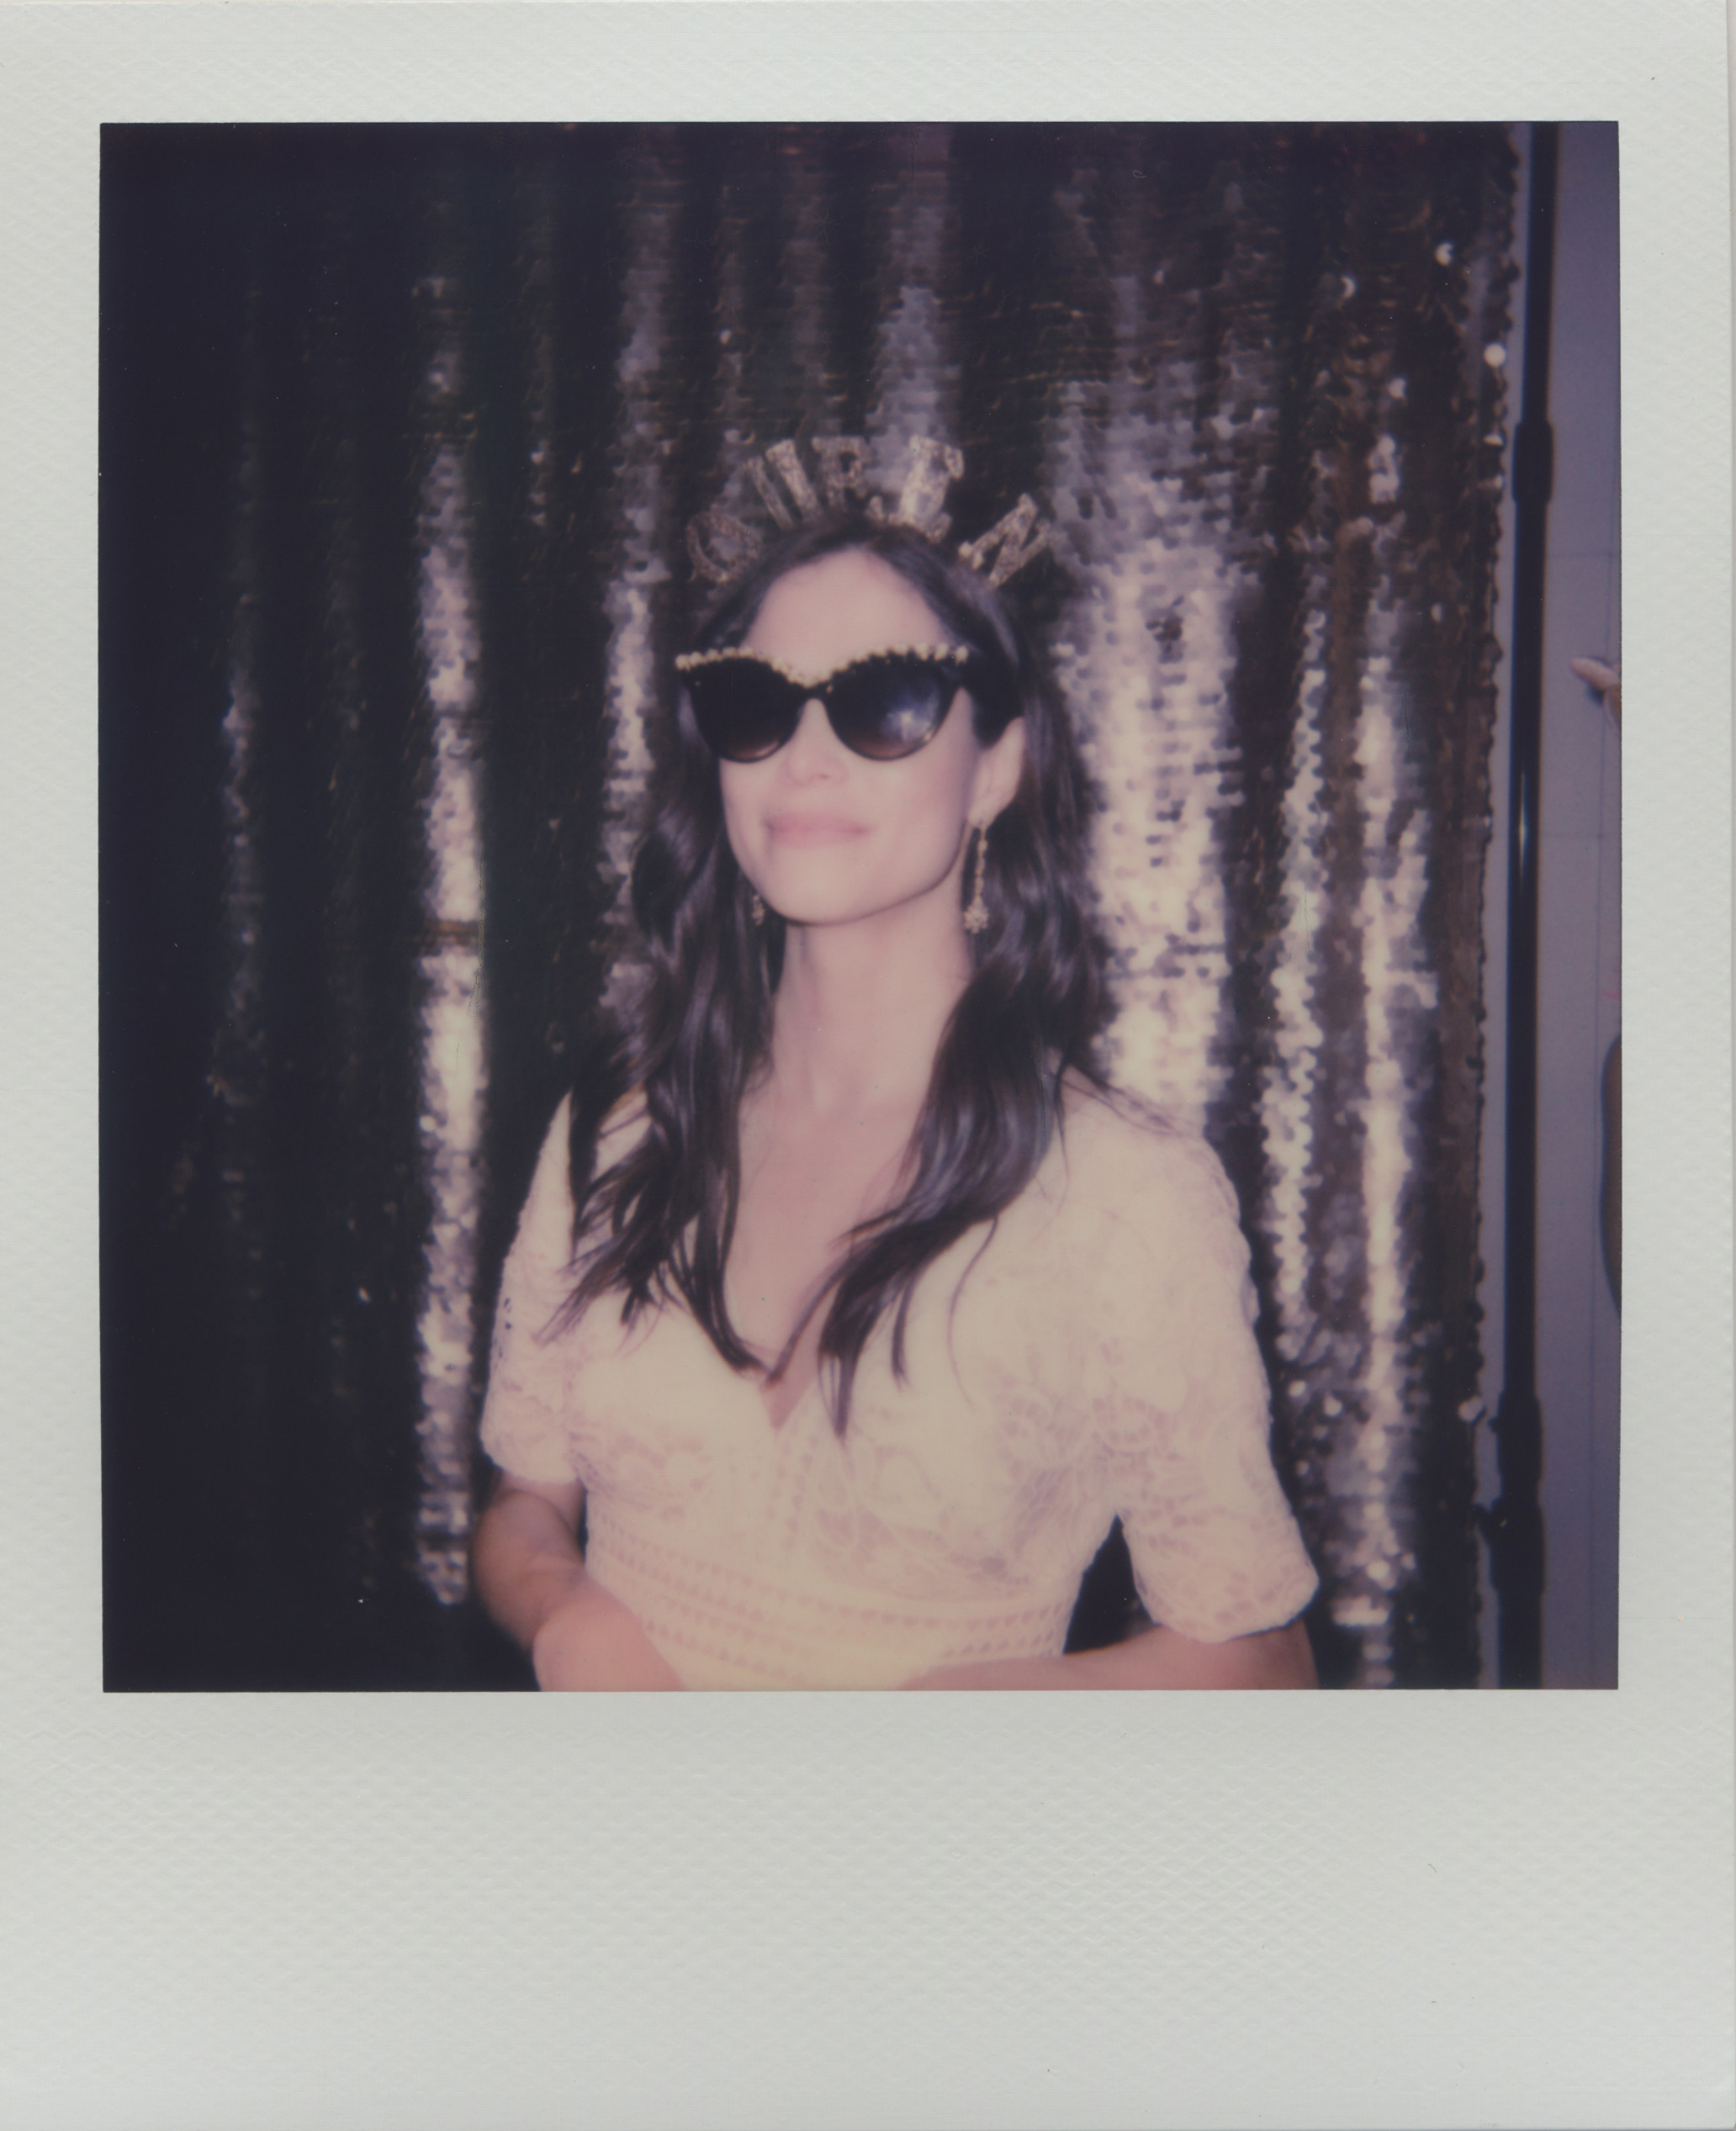 polaroidoriginal_nikitagross_wedding (1).jpeg